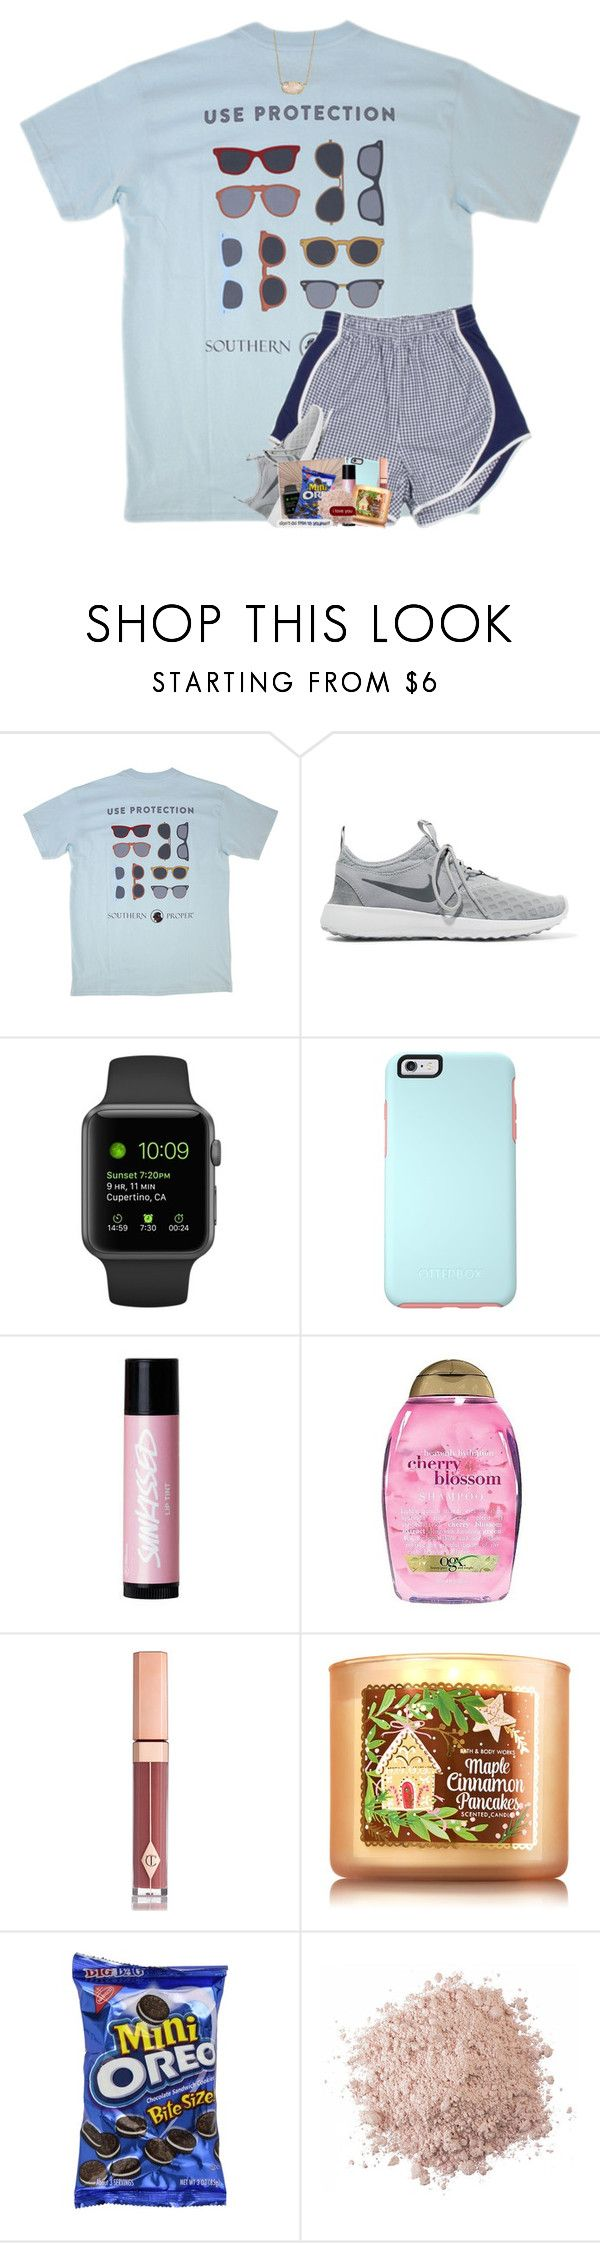 """sometimes you have to let go of people. not because you don't care, because they don't."" by theblonde07 ❤ liked on Polyvore featuring Southern Proper, NIKE, Urban Decay, OtterBox, Organix, Charlotte Tilbury and Kendra Scott"